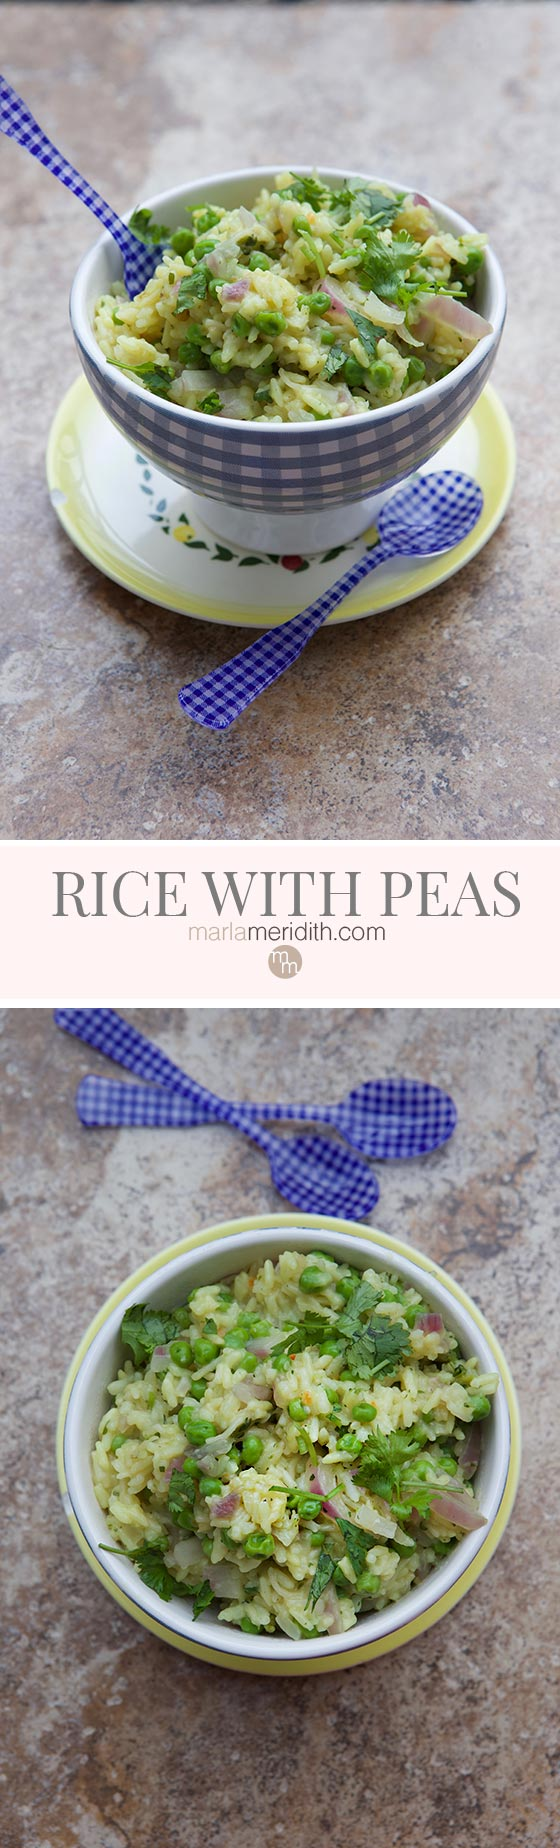 MyRice with Peas recipe is just that...simple, but delicious all the same! marlameridith.com